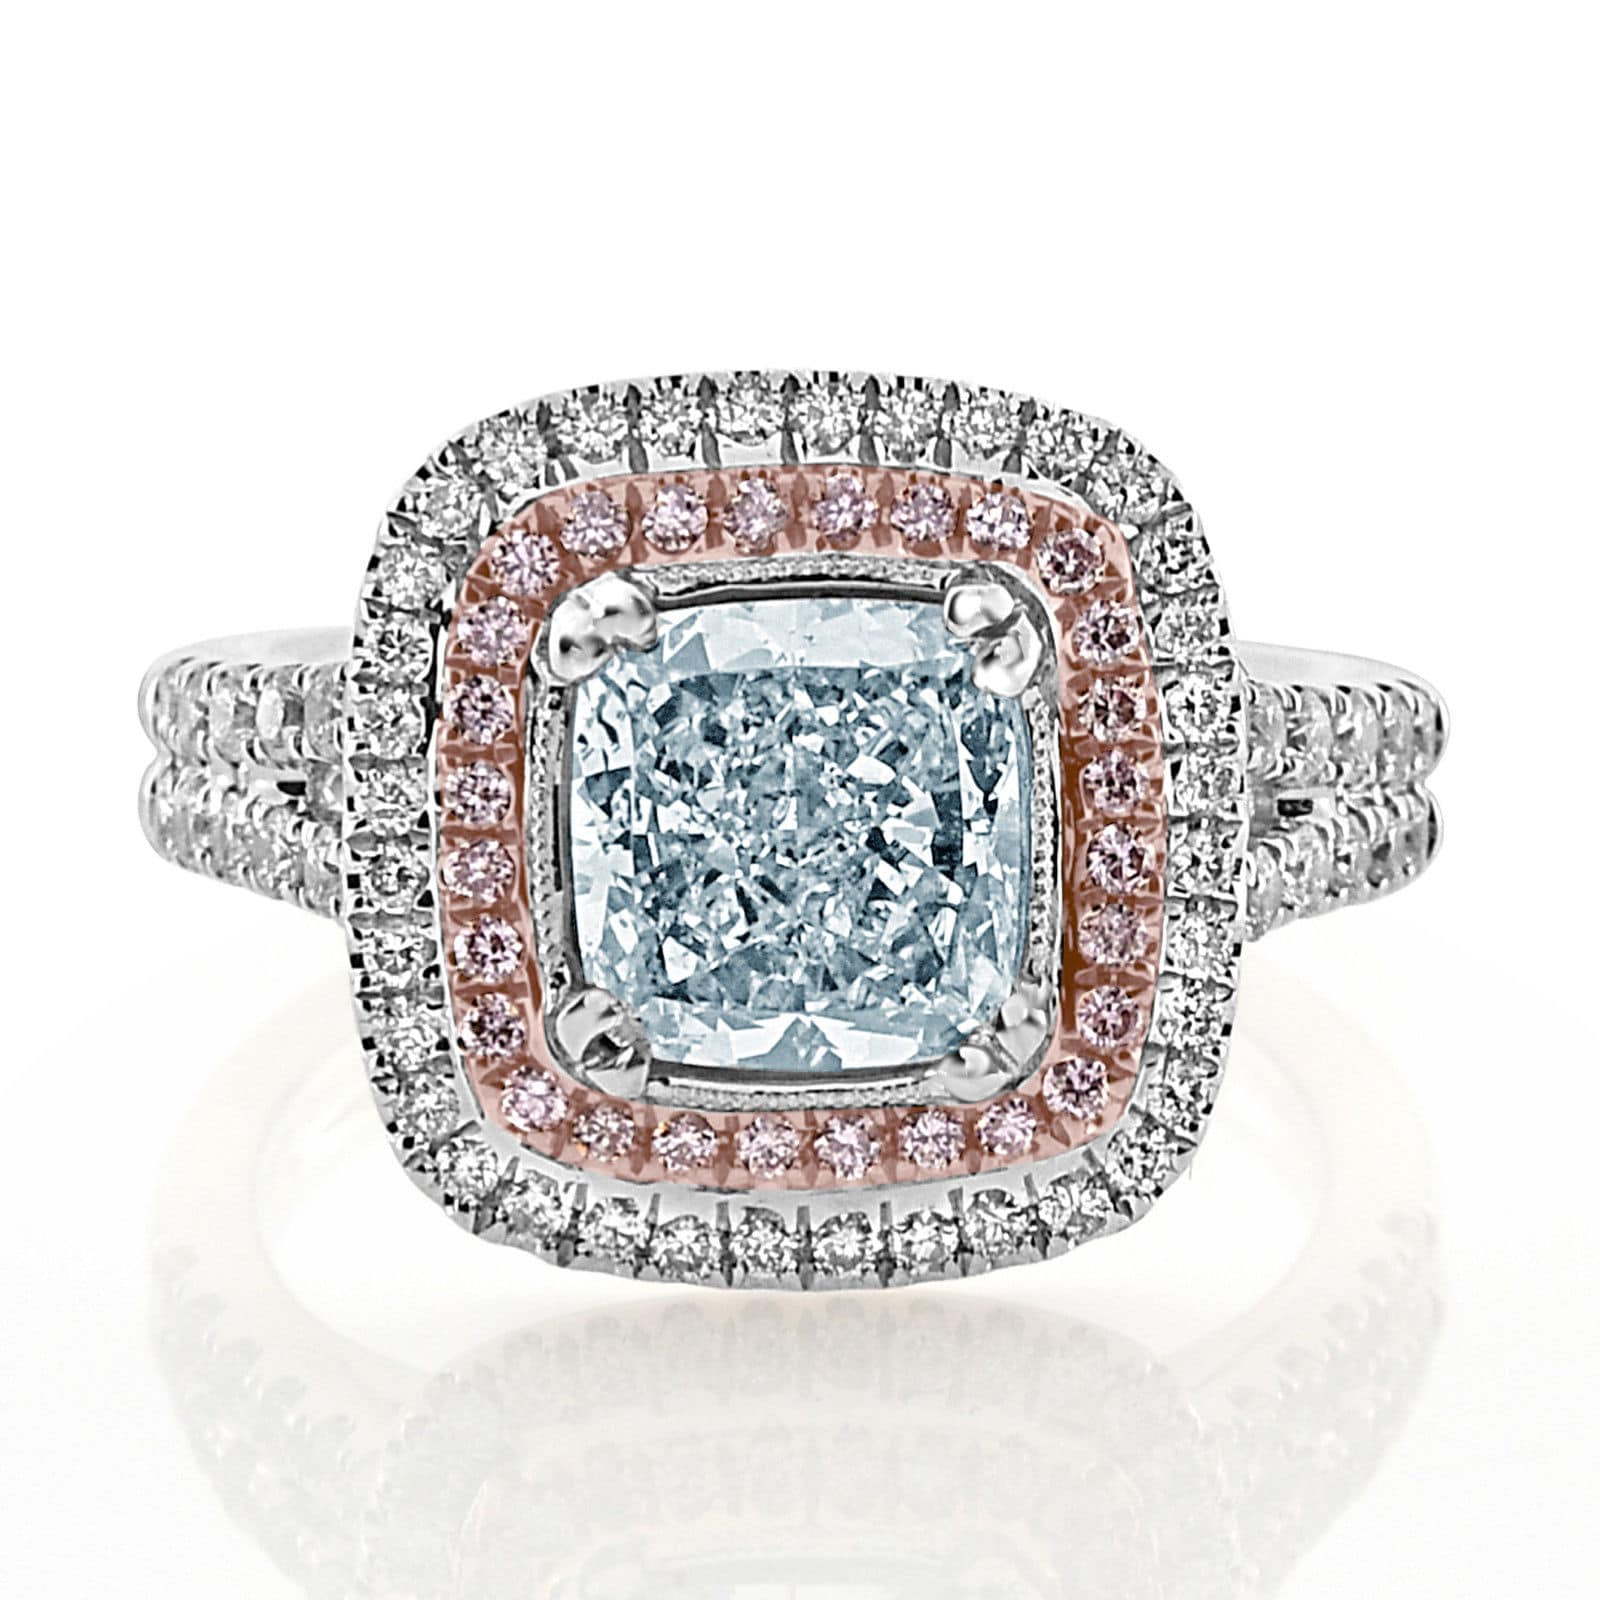 Real GIA 275ct Natural Fancy Light Blue Pink Diamonds Engagement Ring 18K 263917379417 - Home